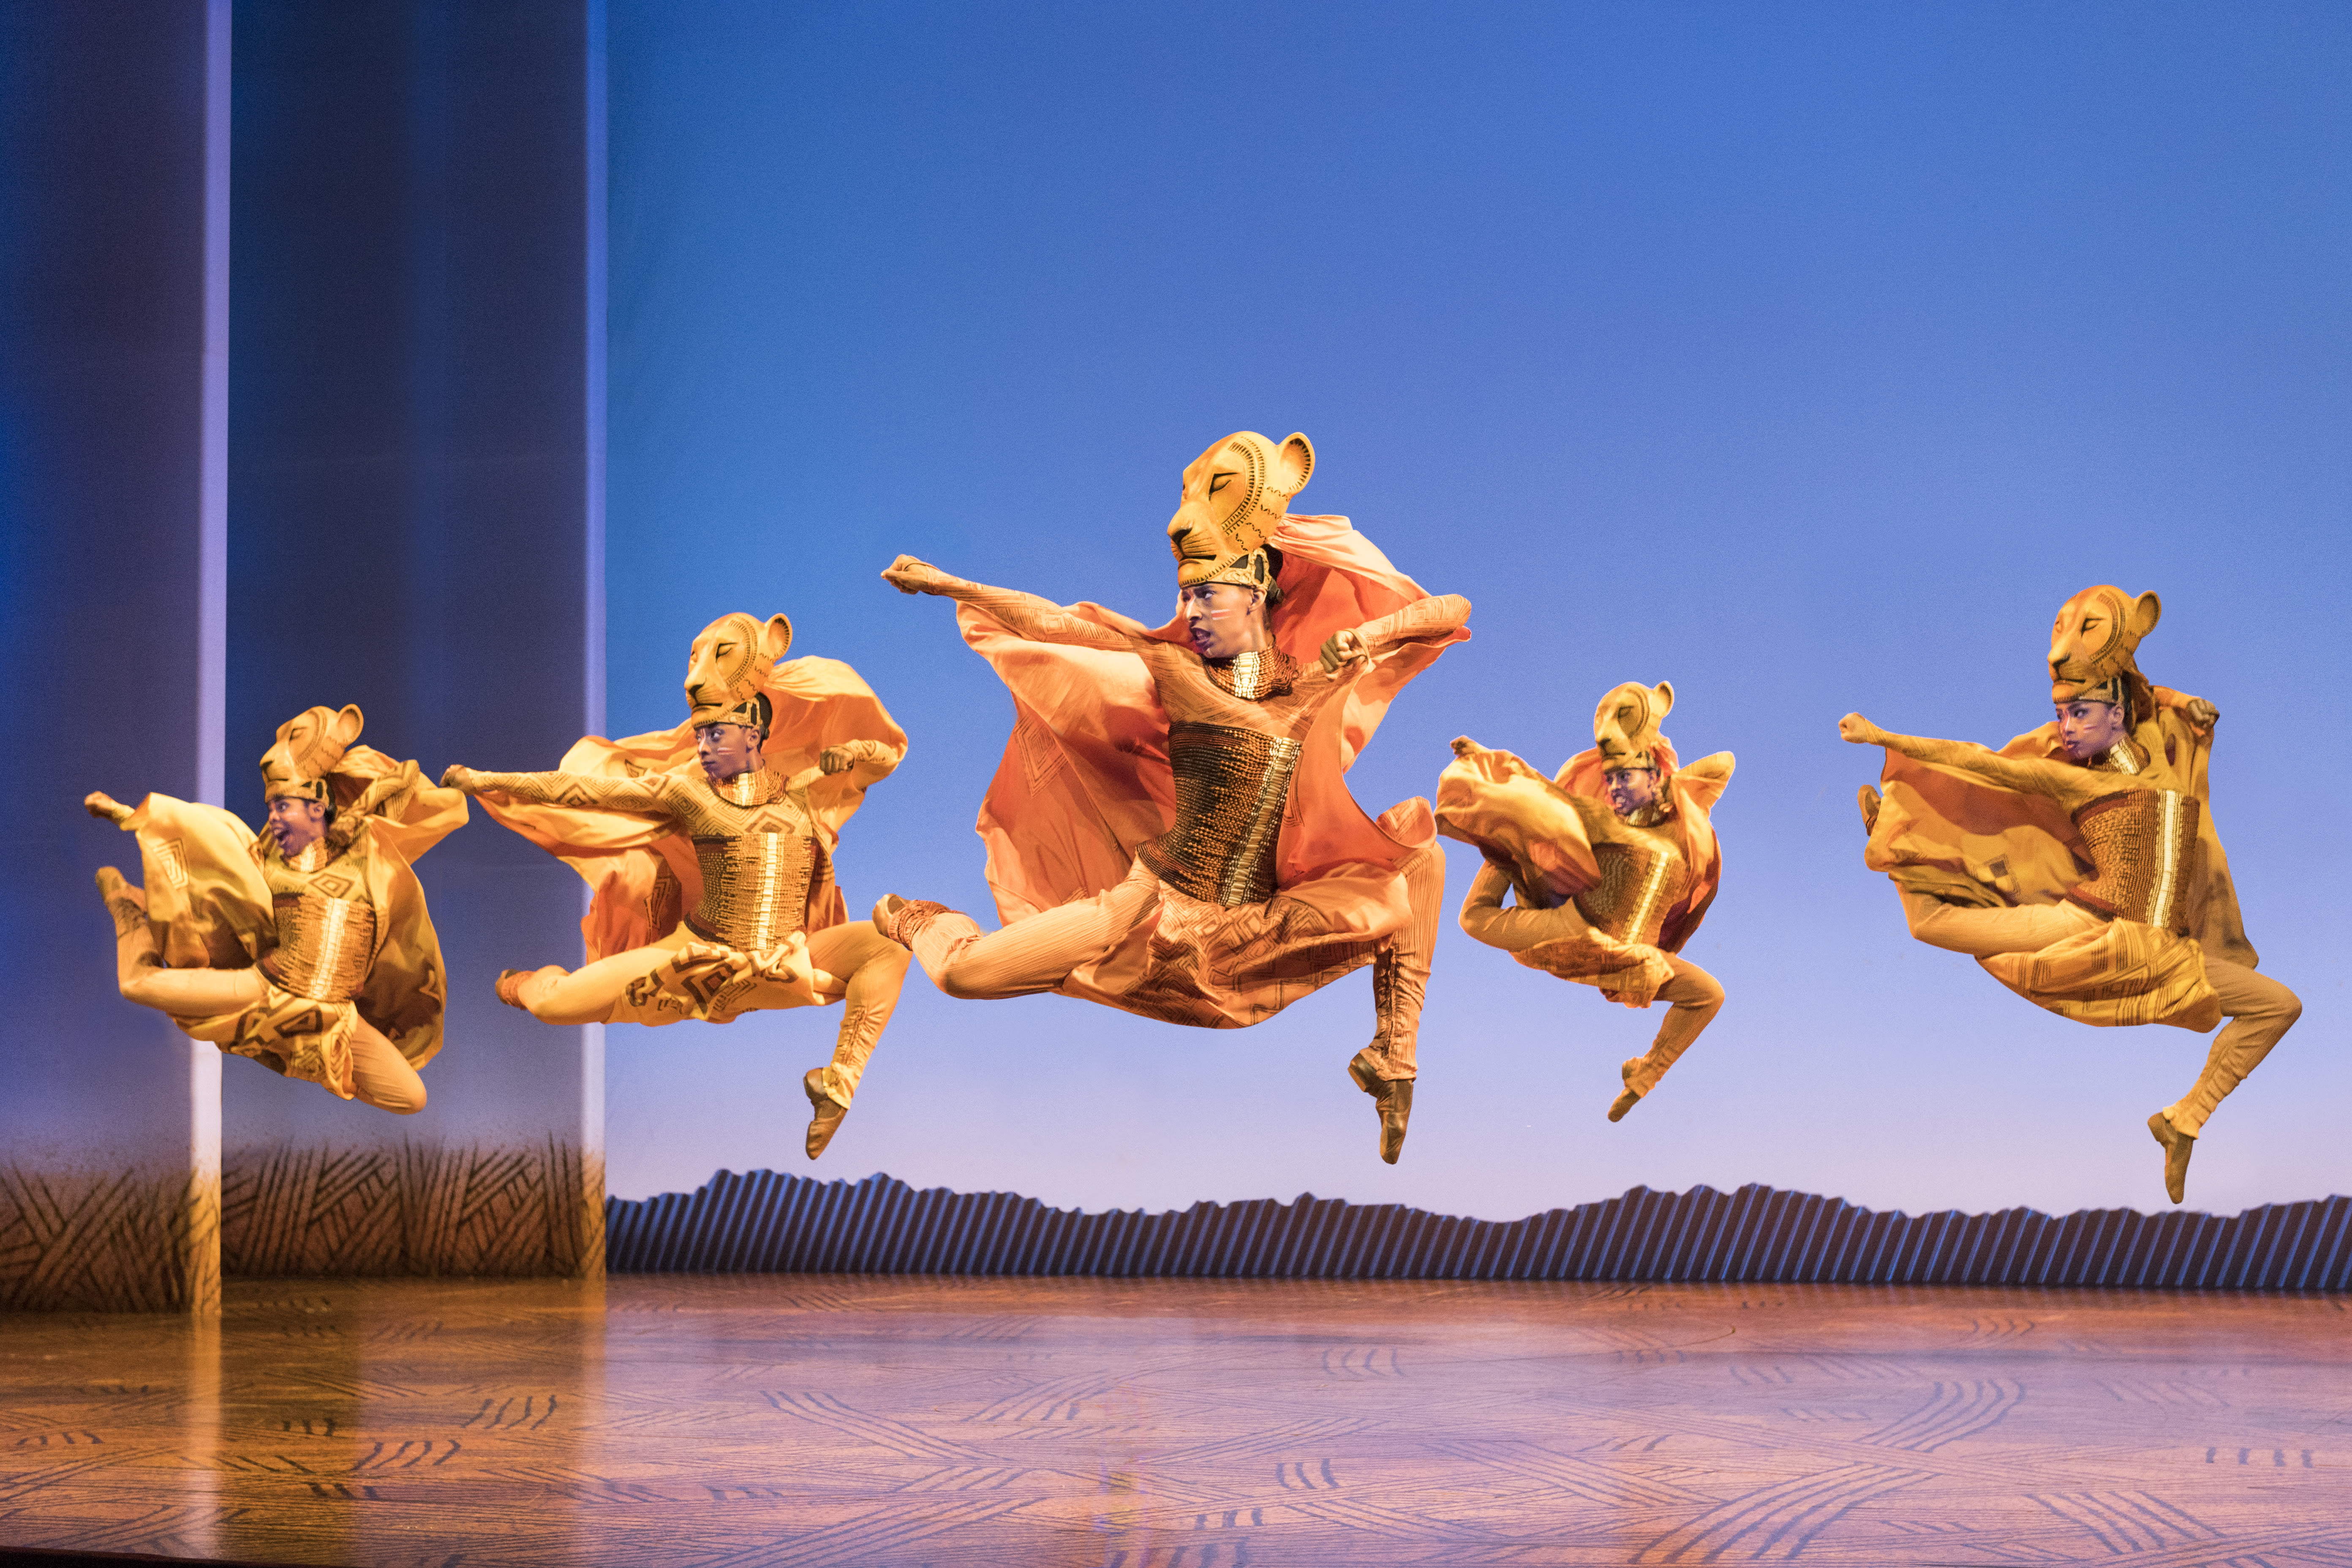 Lionesses dance in the lion king north american tour   disney. photo by deen van meer  umavsm